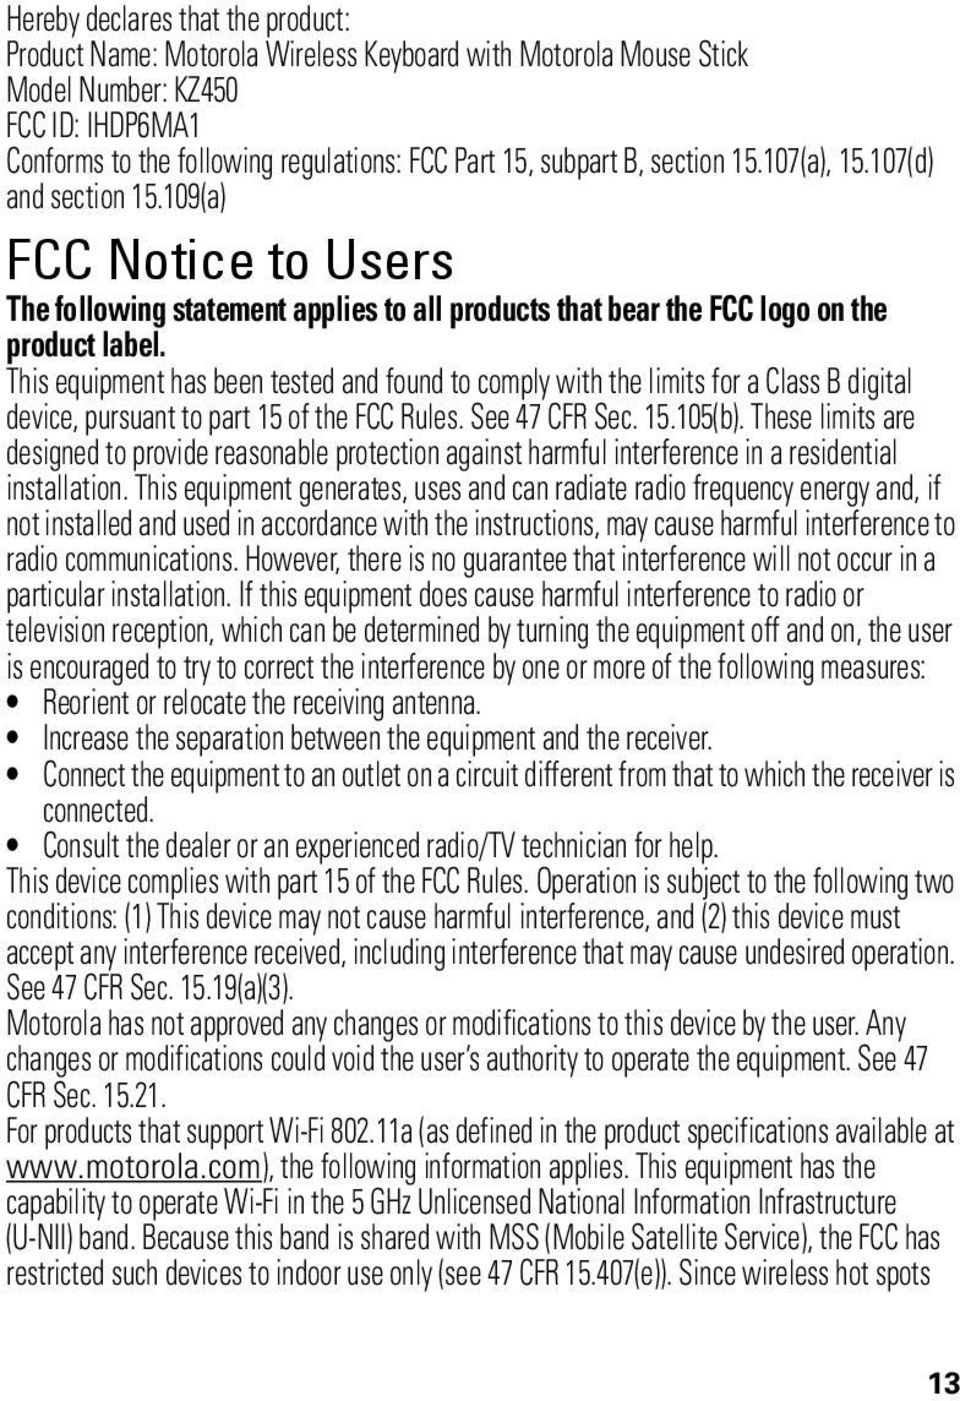 This equipment has been tested and found to comply with the limits for a Class B digital device, pursuant to part 15 of the FCC Rules. See 47 CFR Sec. 15.105(b).